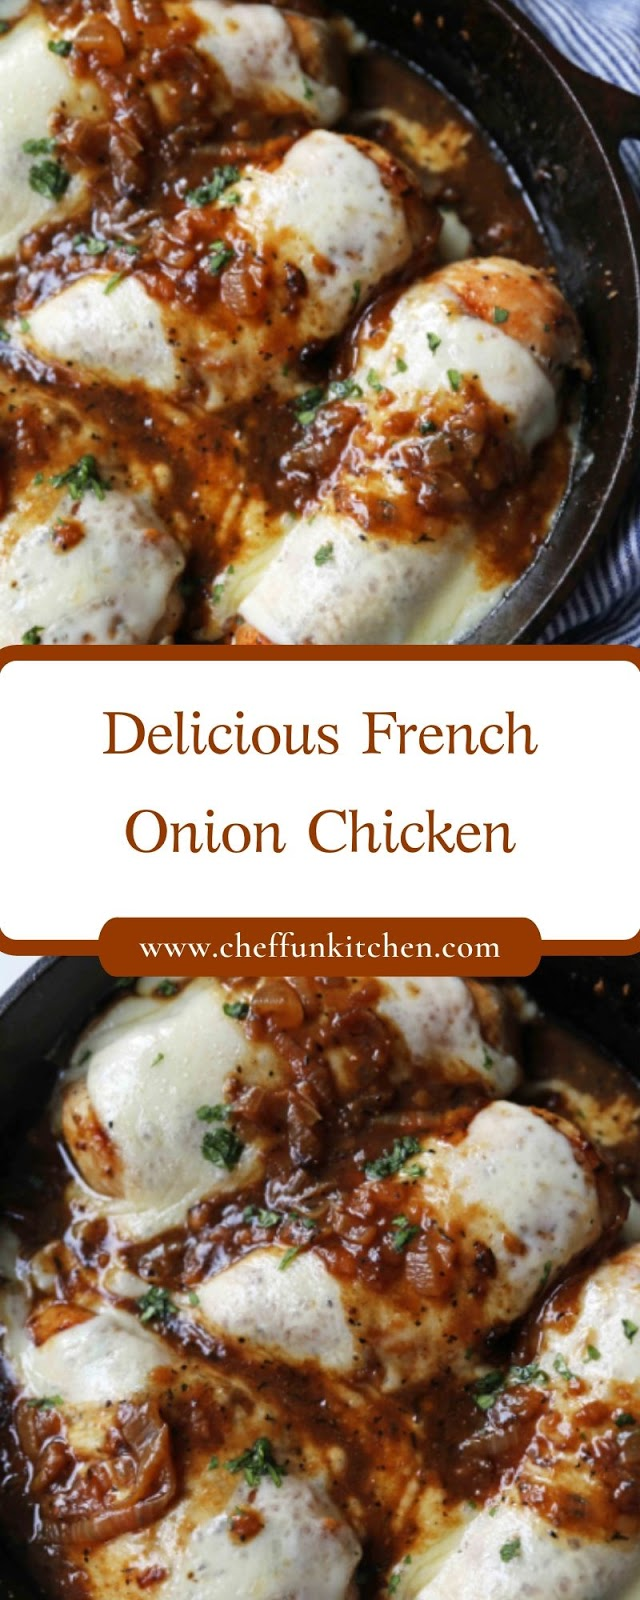 Delicious French Onion Chicken